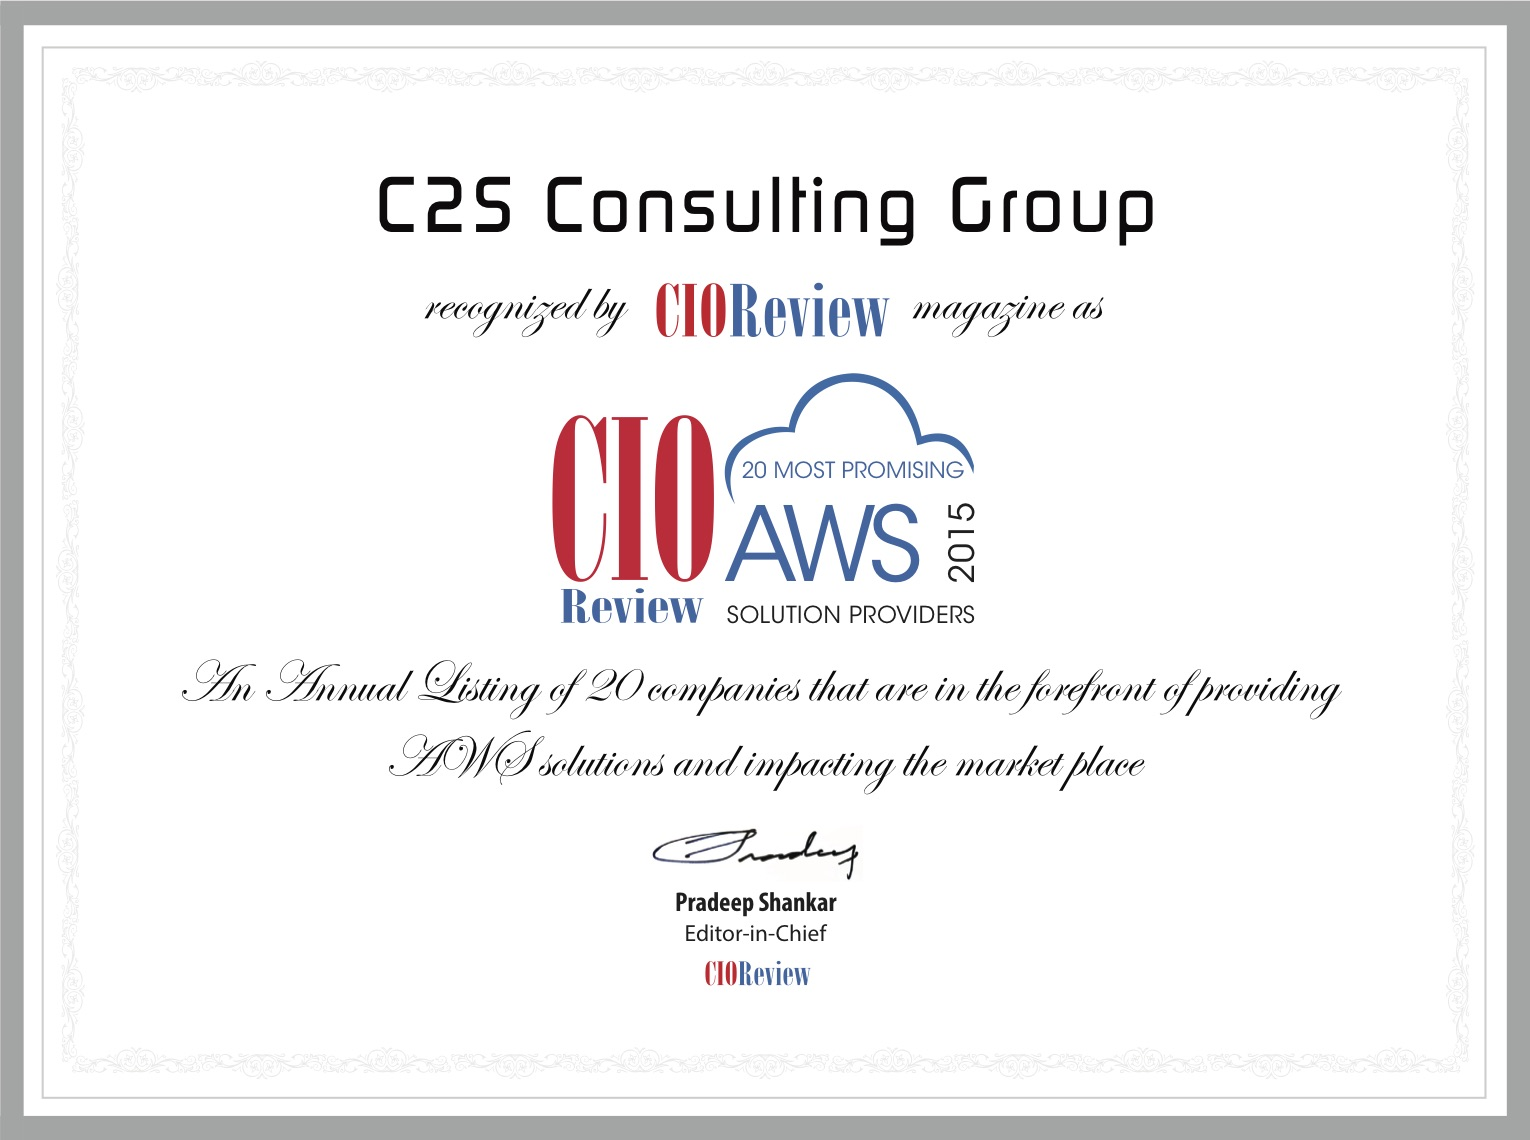 C2S Consulting Group[4]